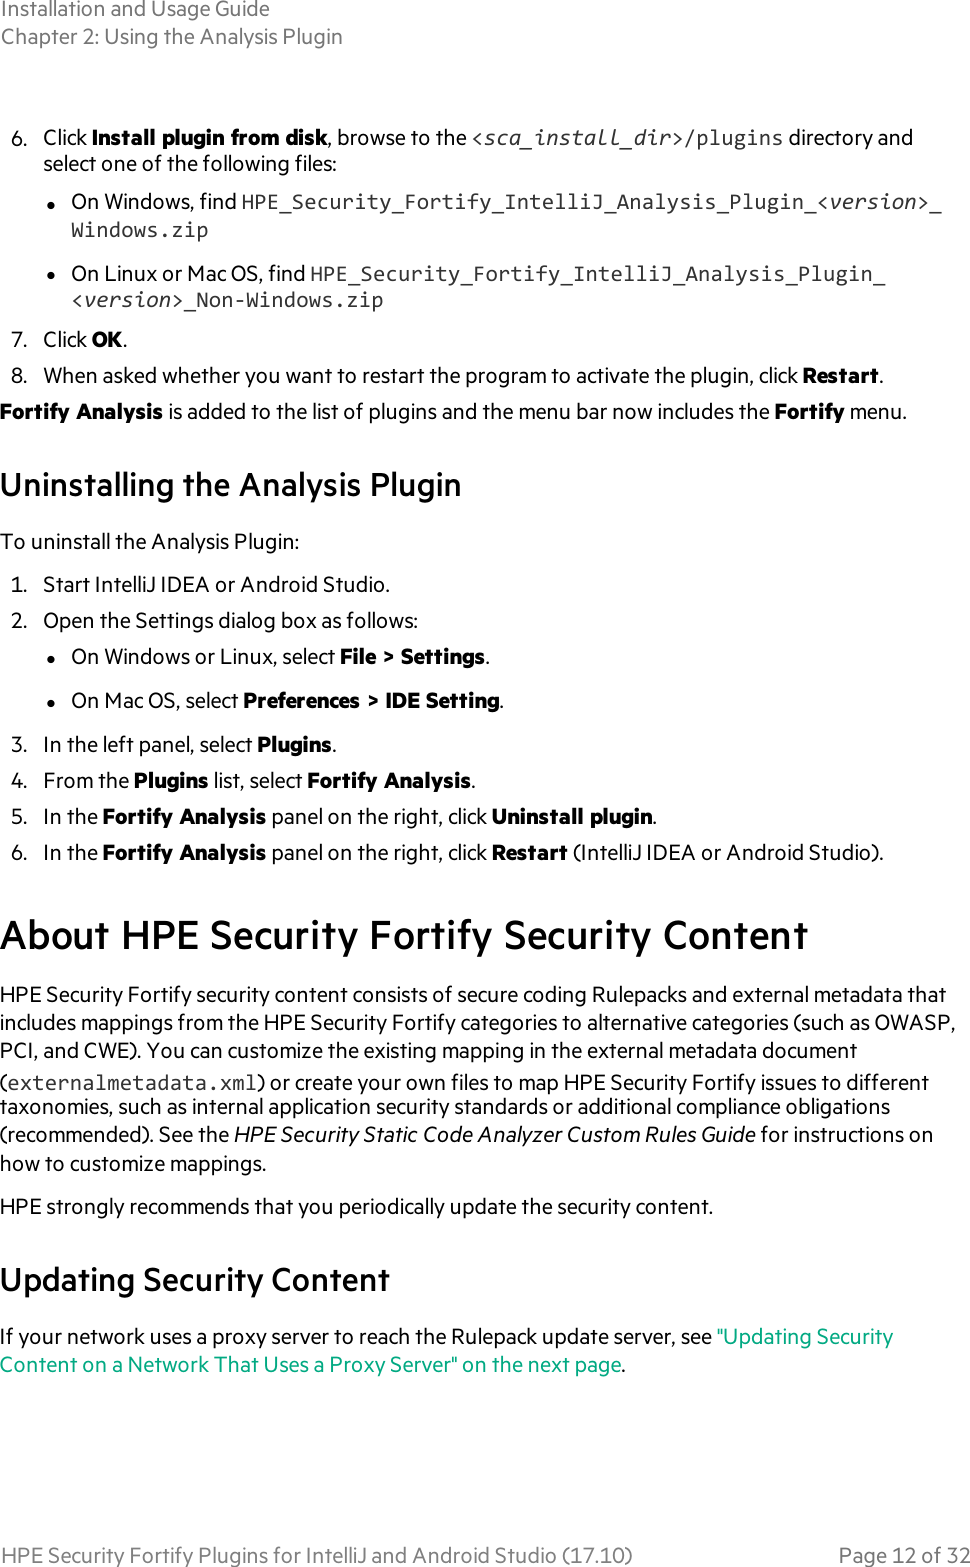 HPE Security Fortify Plugins For IntelliJ And Android Studio